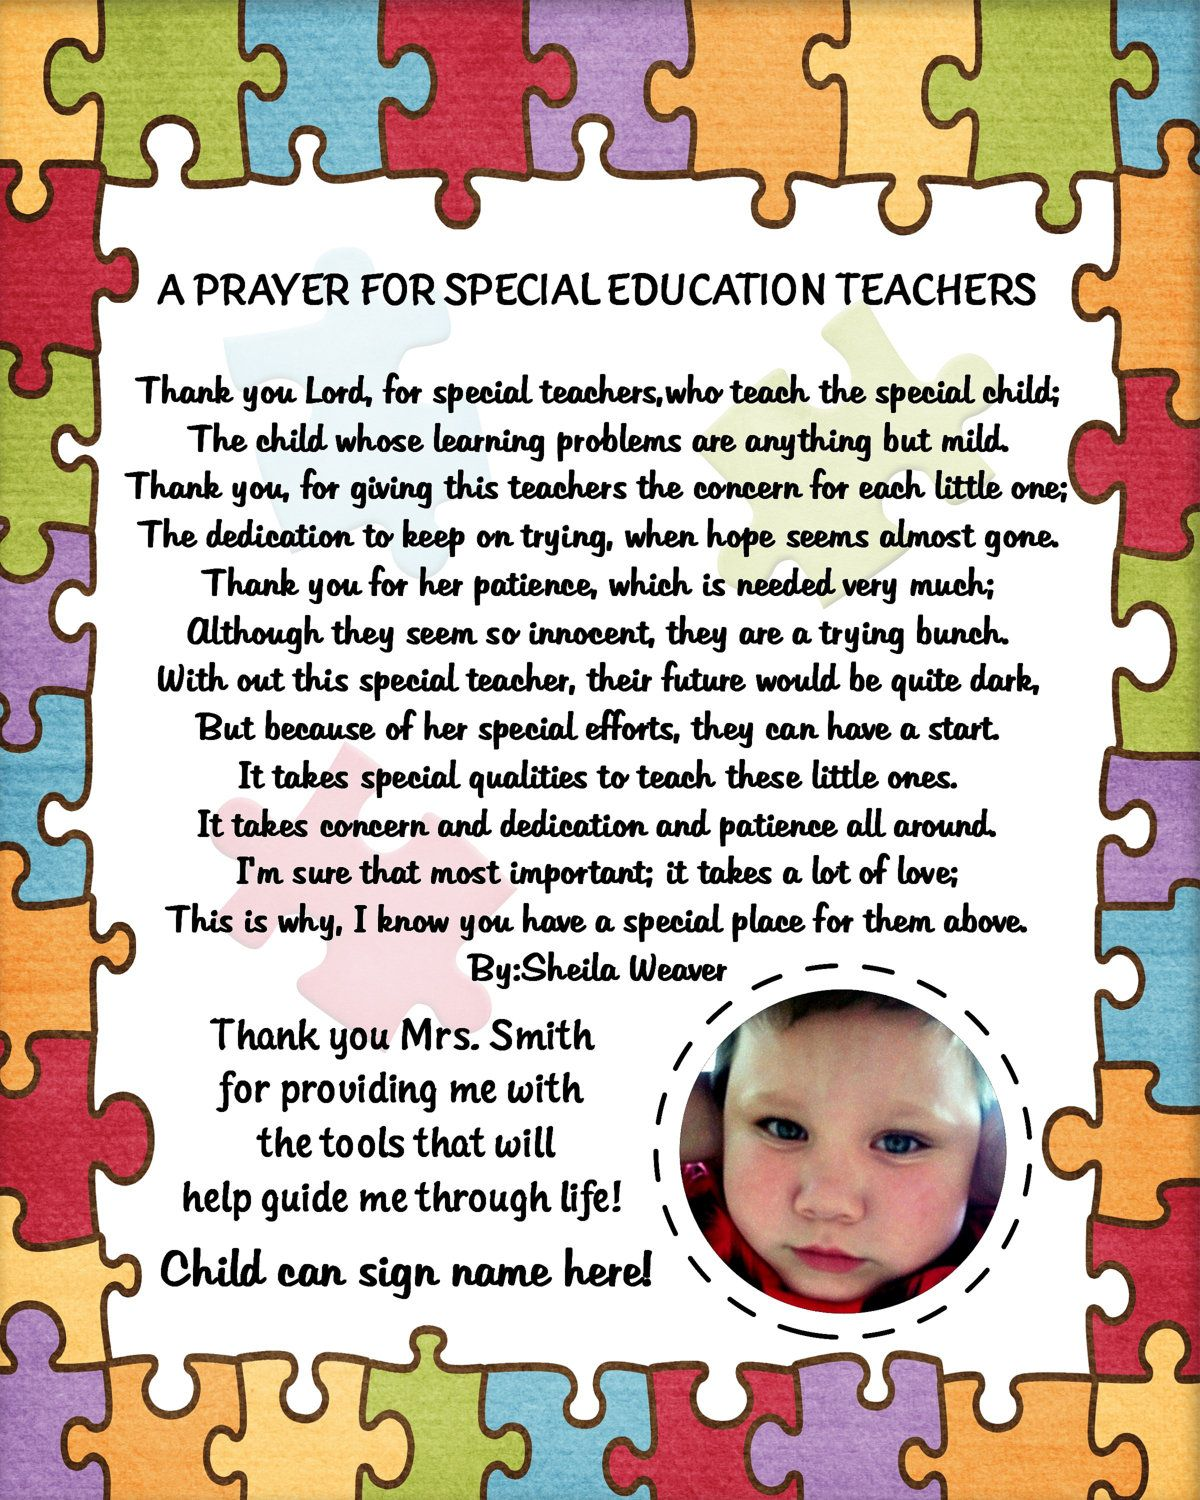 Personalized Autism Special Needs Teacher The Thank You Reciation Photo Poem Printable 8x10 All Proceeds Go To Awareness